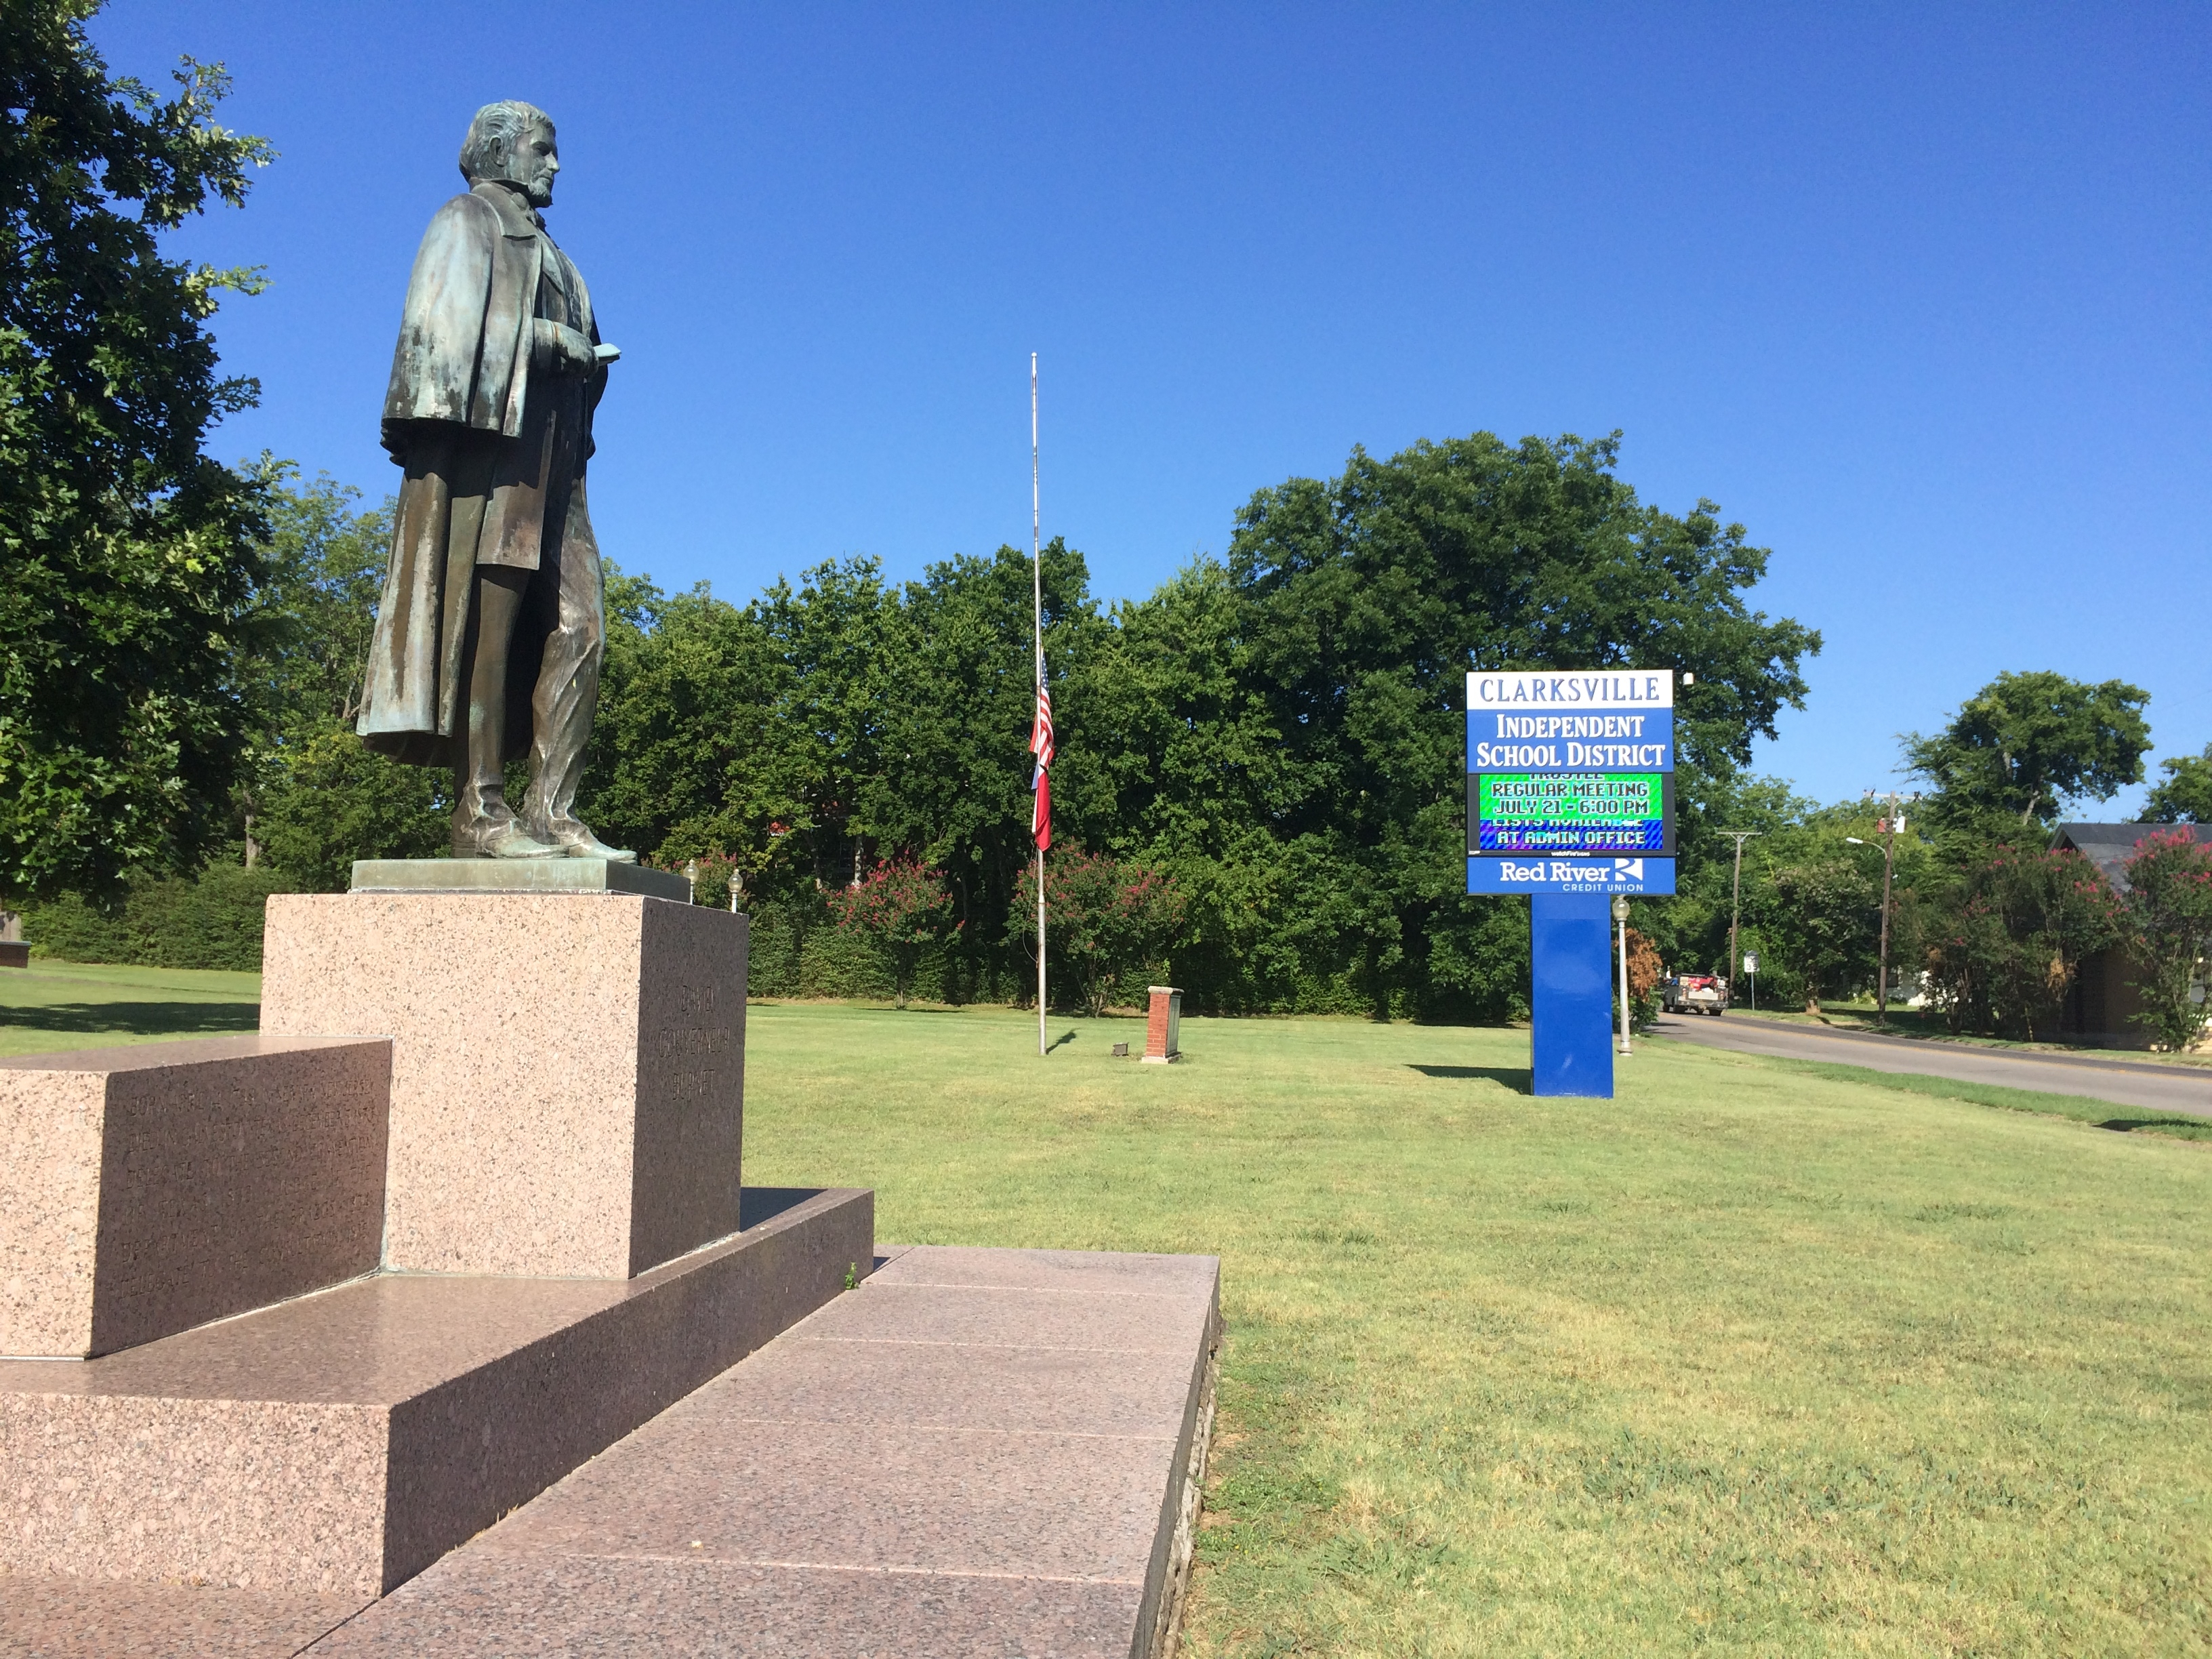 David Gouverneur Burnet statue and Clarksville High School sign.